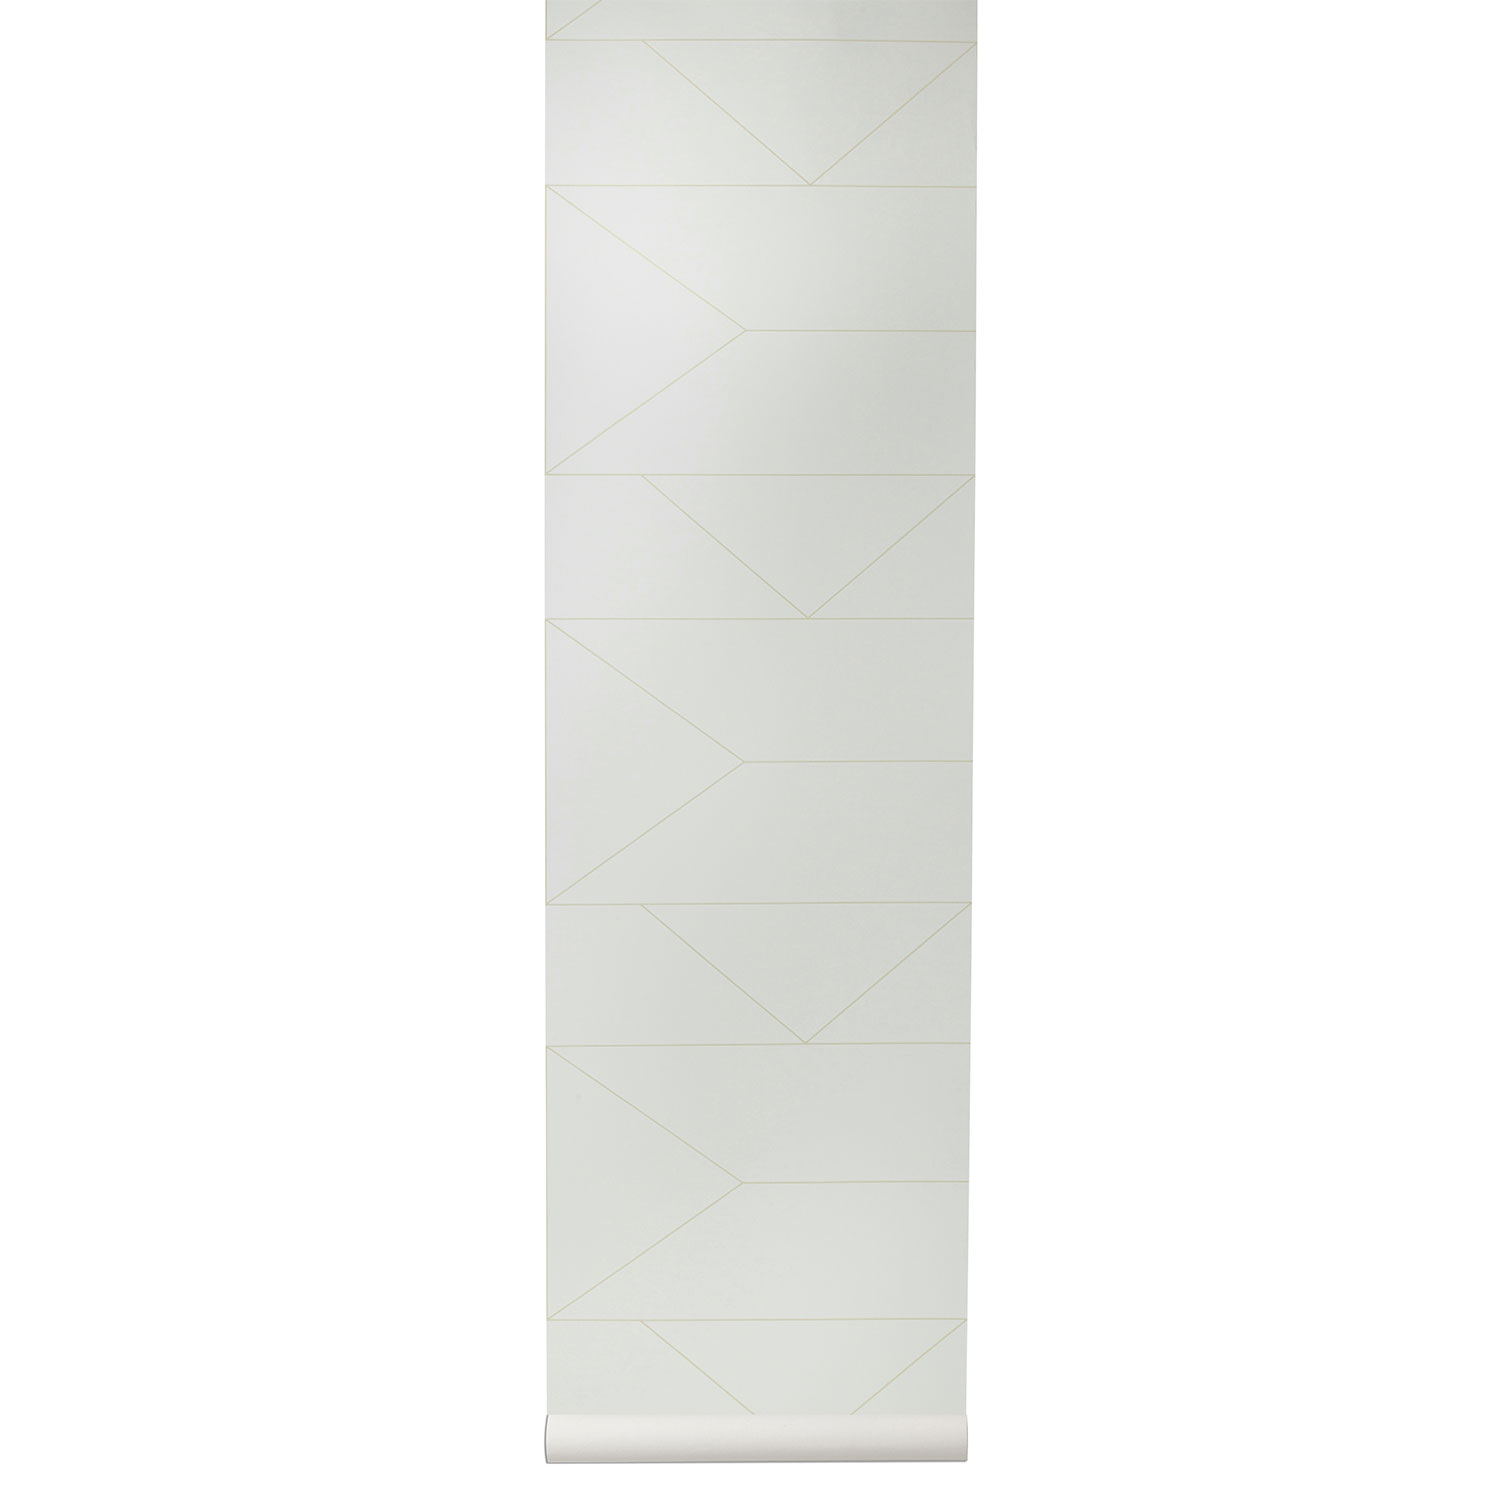 Image of Ferm Living-Lines Tapete, Off-White